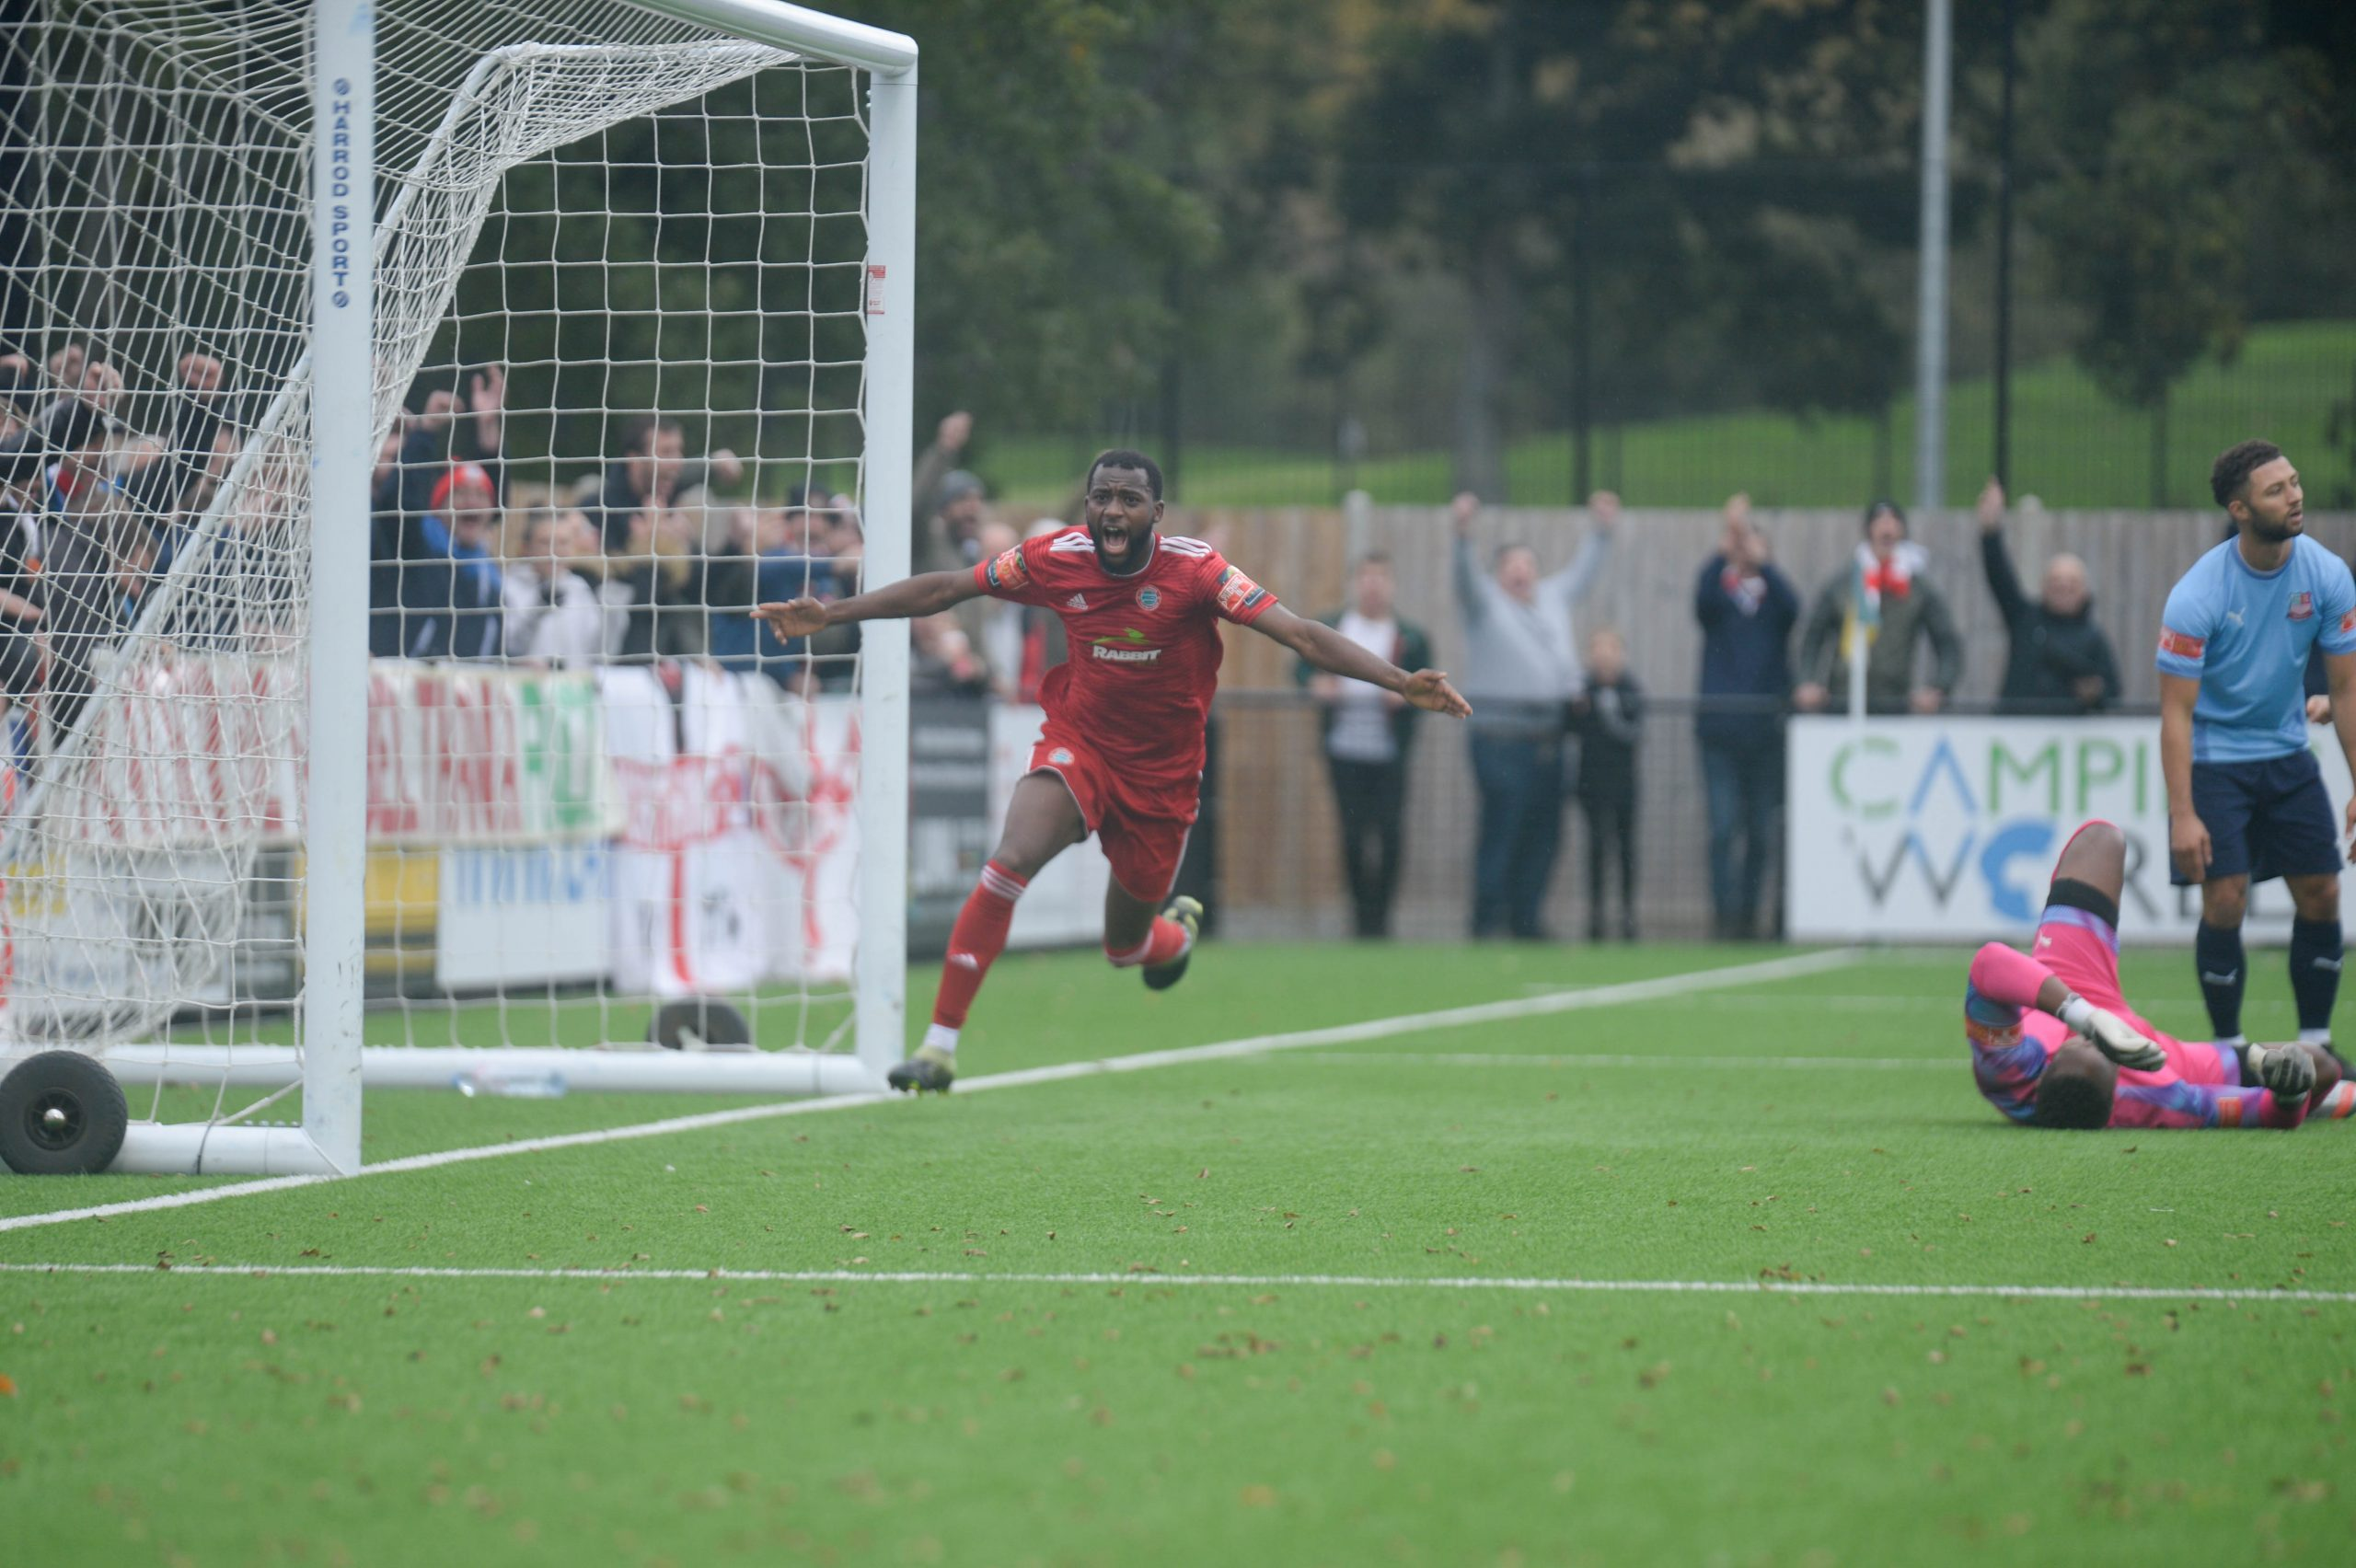 Read the full article - Super Sub Diallo fires Worthing top